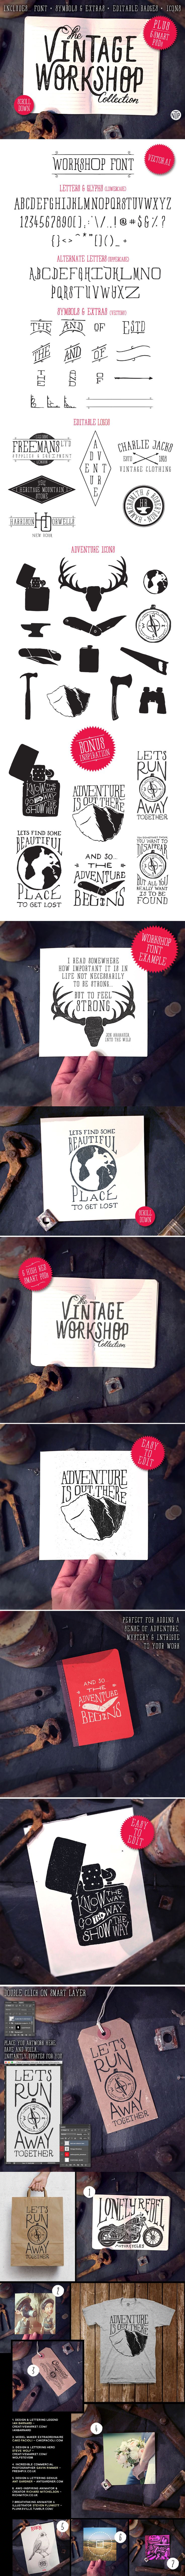 Vintage Workshop, just 1 of 43 stylish fonts for designers of all skill levels in this bundle at MyDesignDeals.